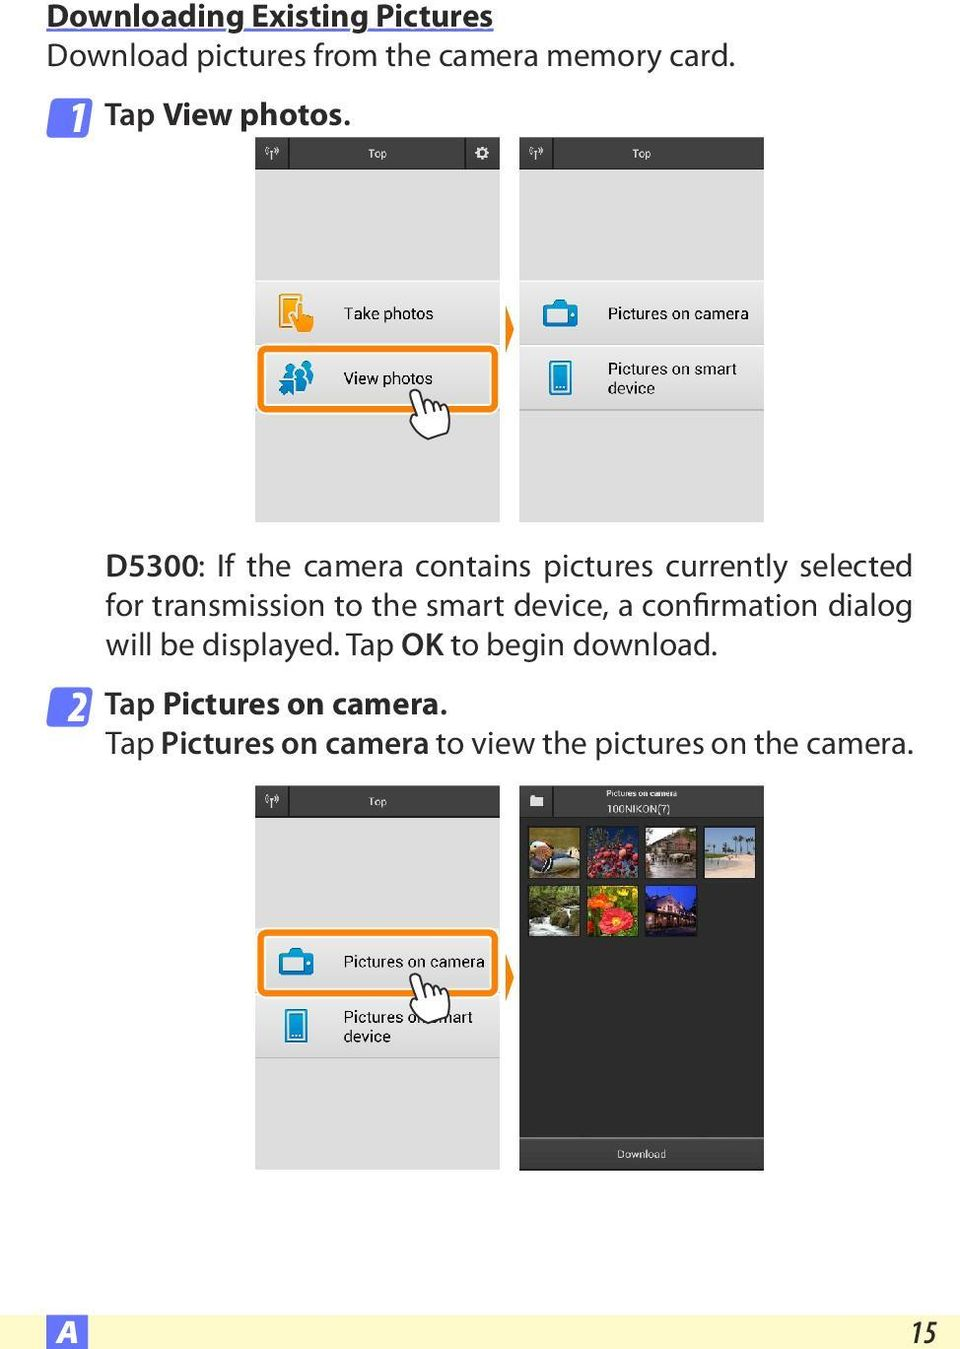 2 D5300: If the camera contains pictures currently selected for transmission to the